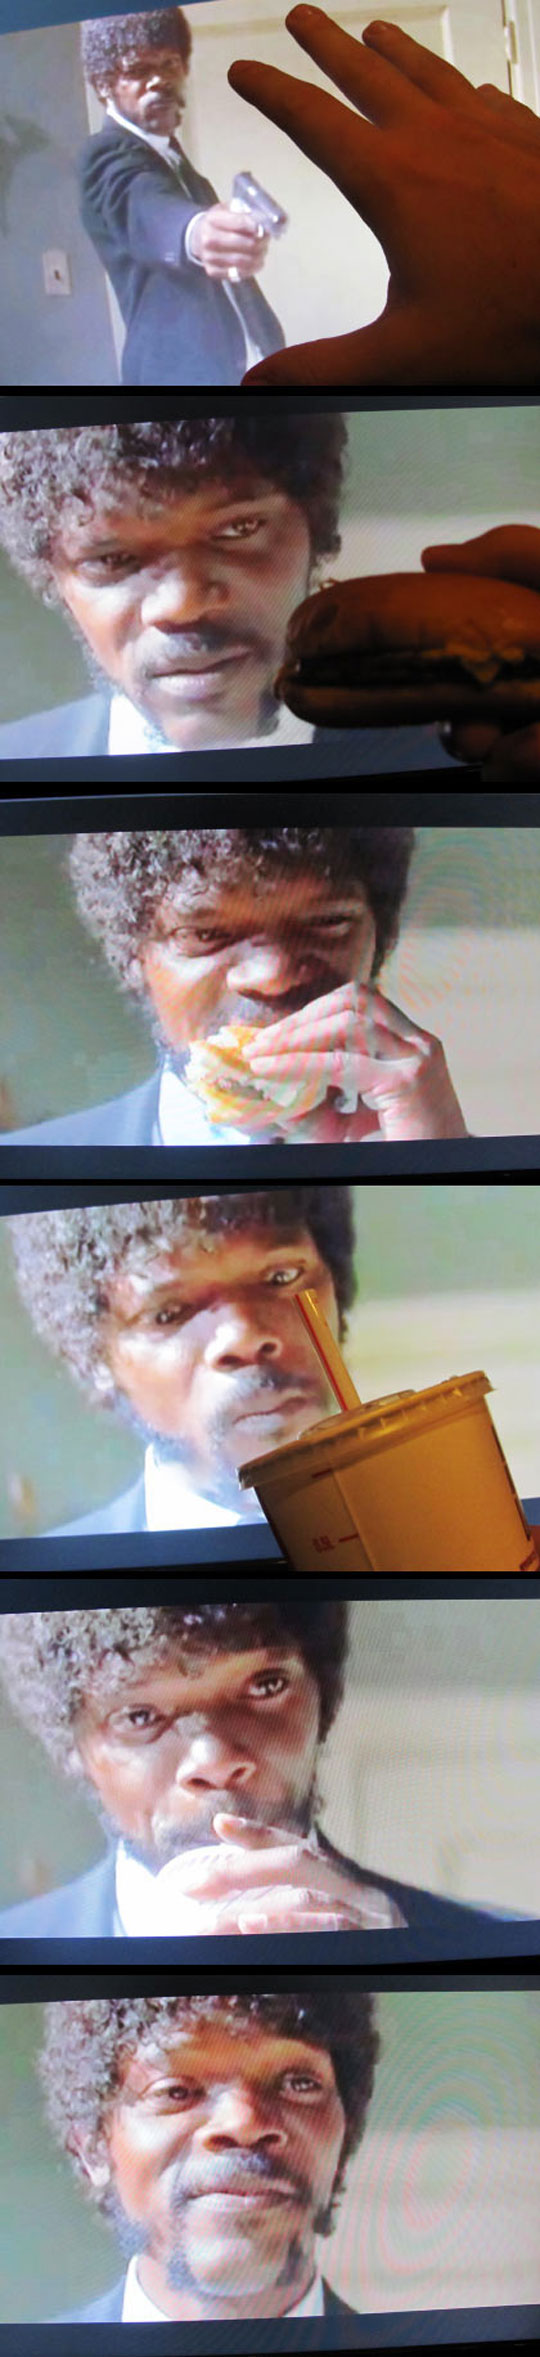 How To Calm Down Samuel L. Jackson